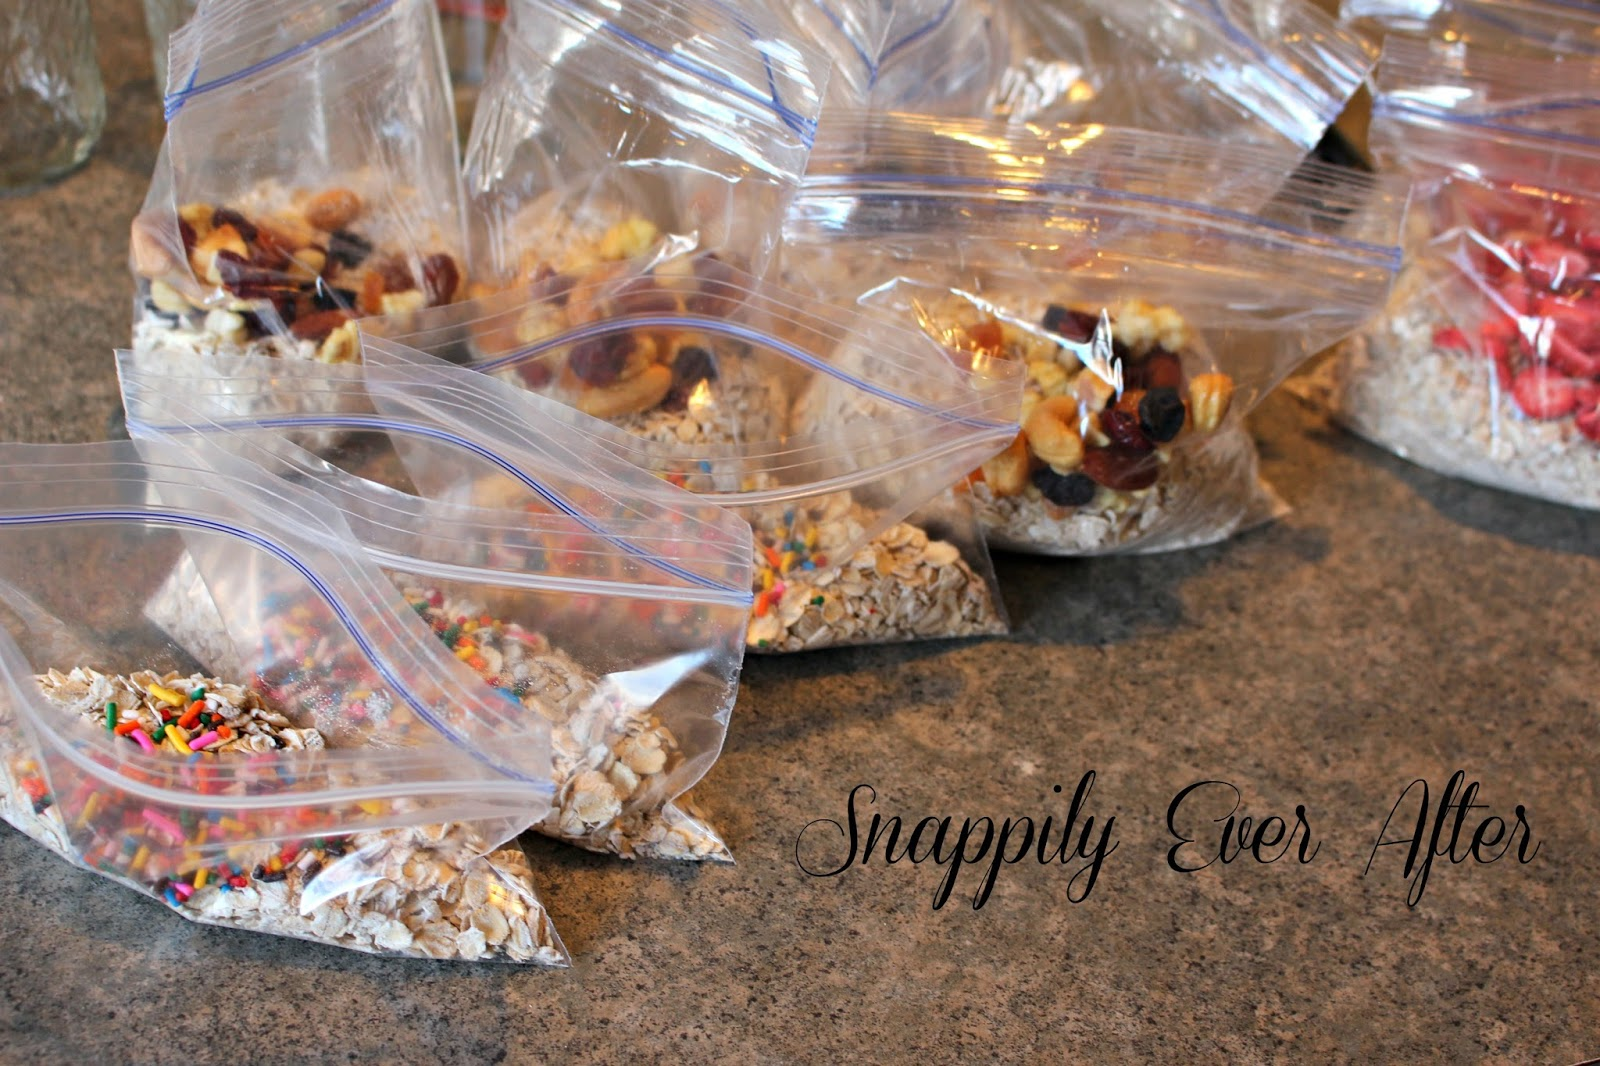 snappily ever after: homemade instant oatmeal with flavor